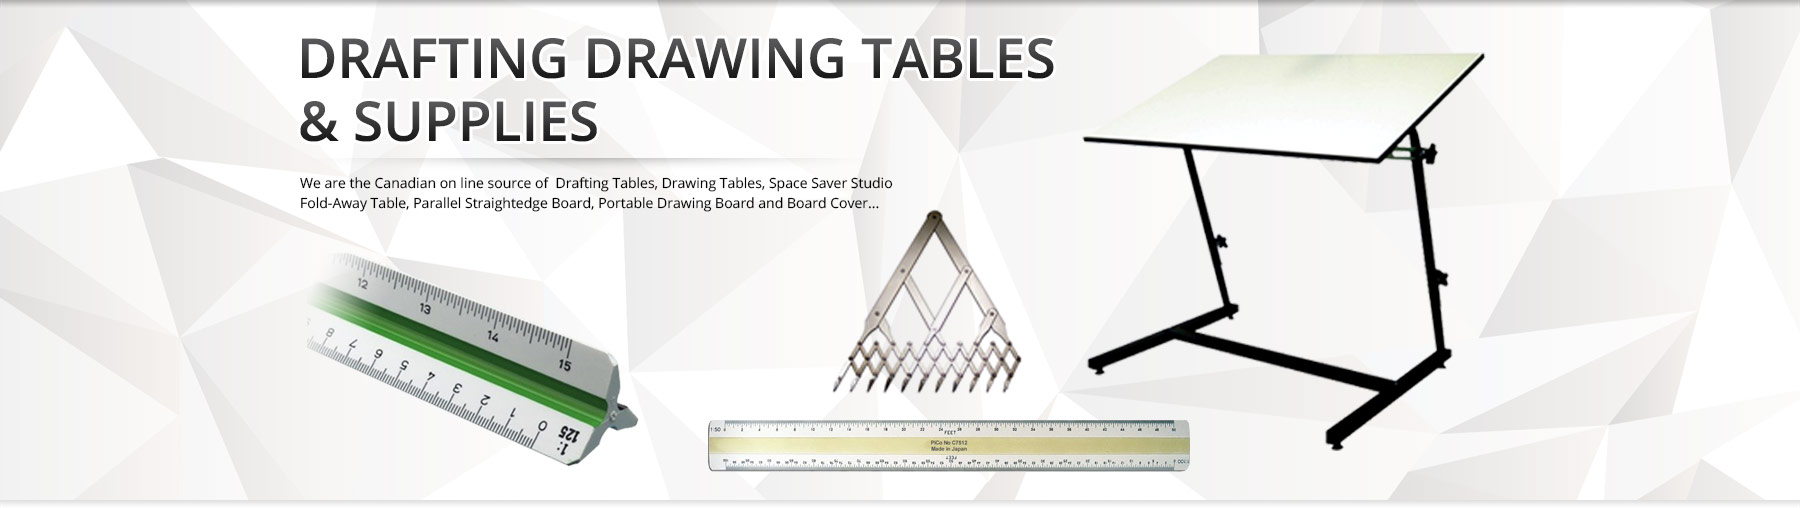 Portable Drafting Table Great Cardboard